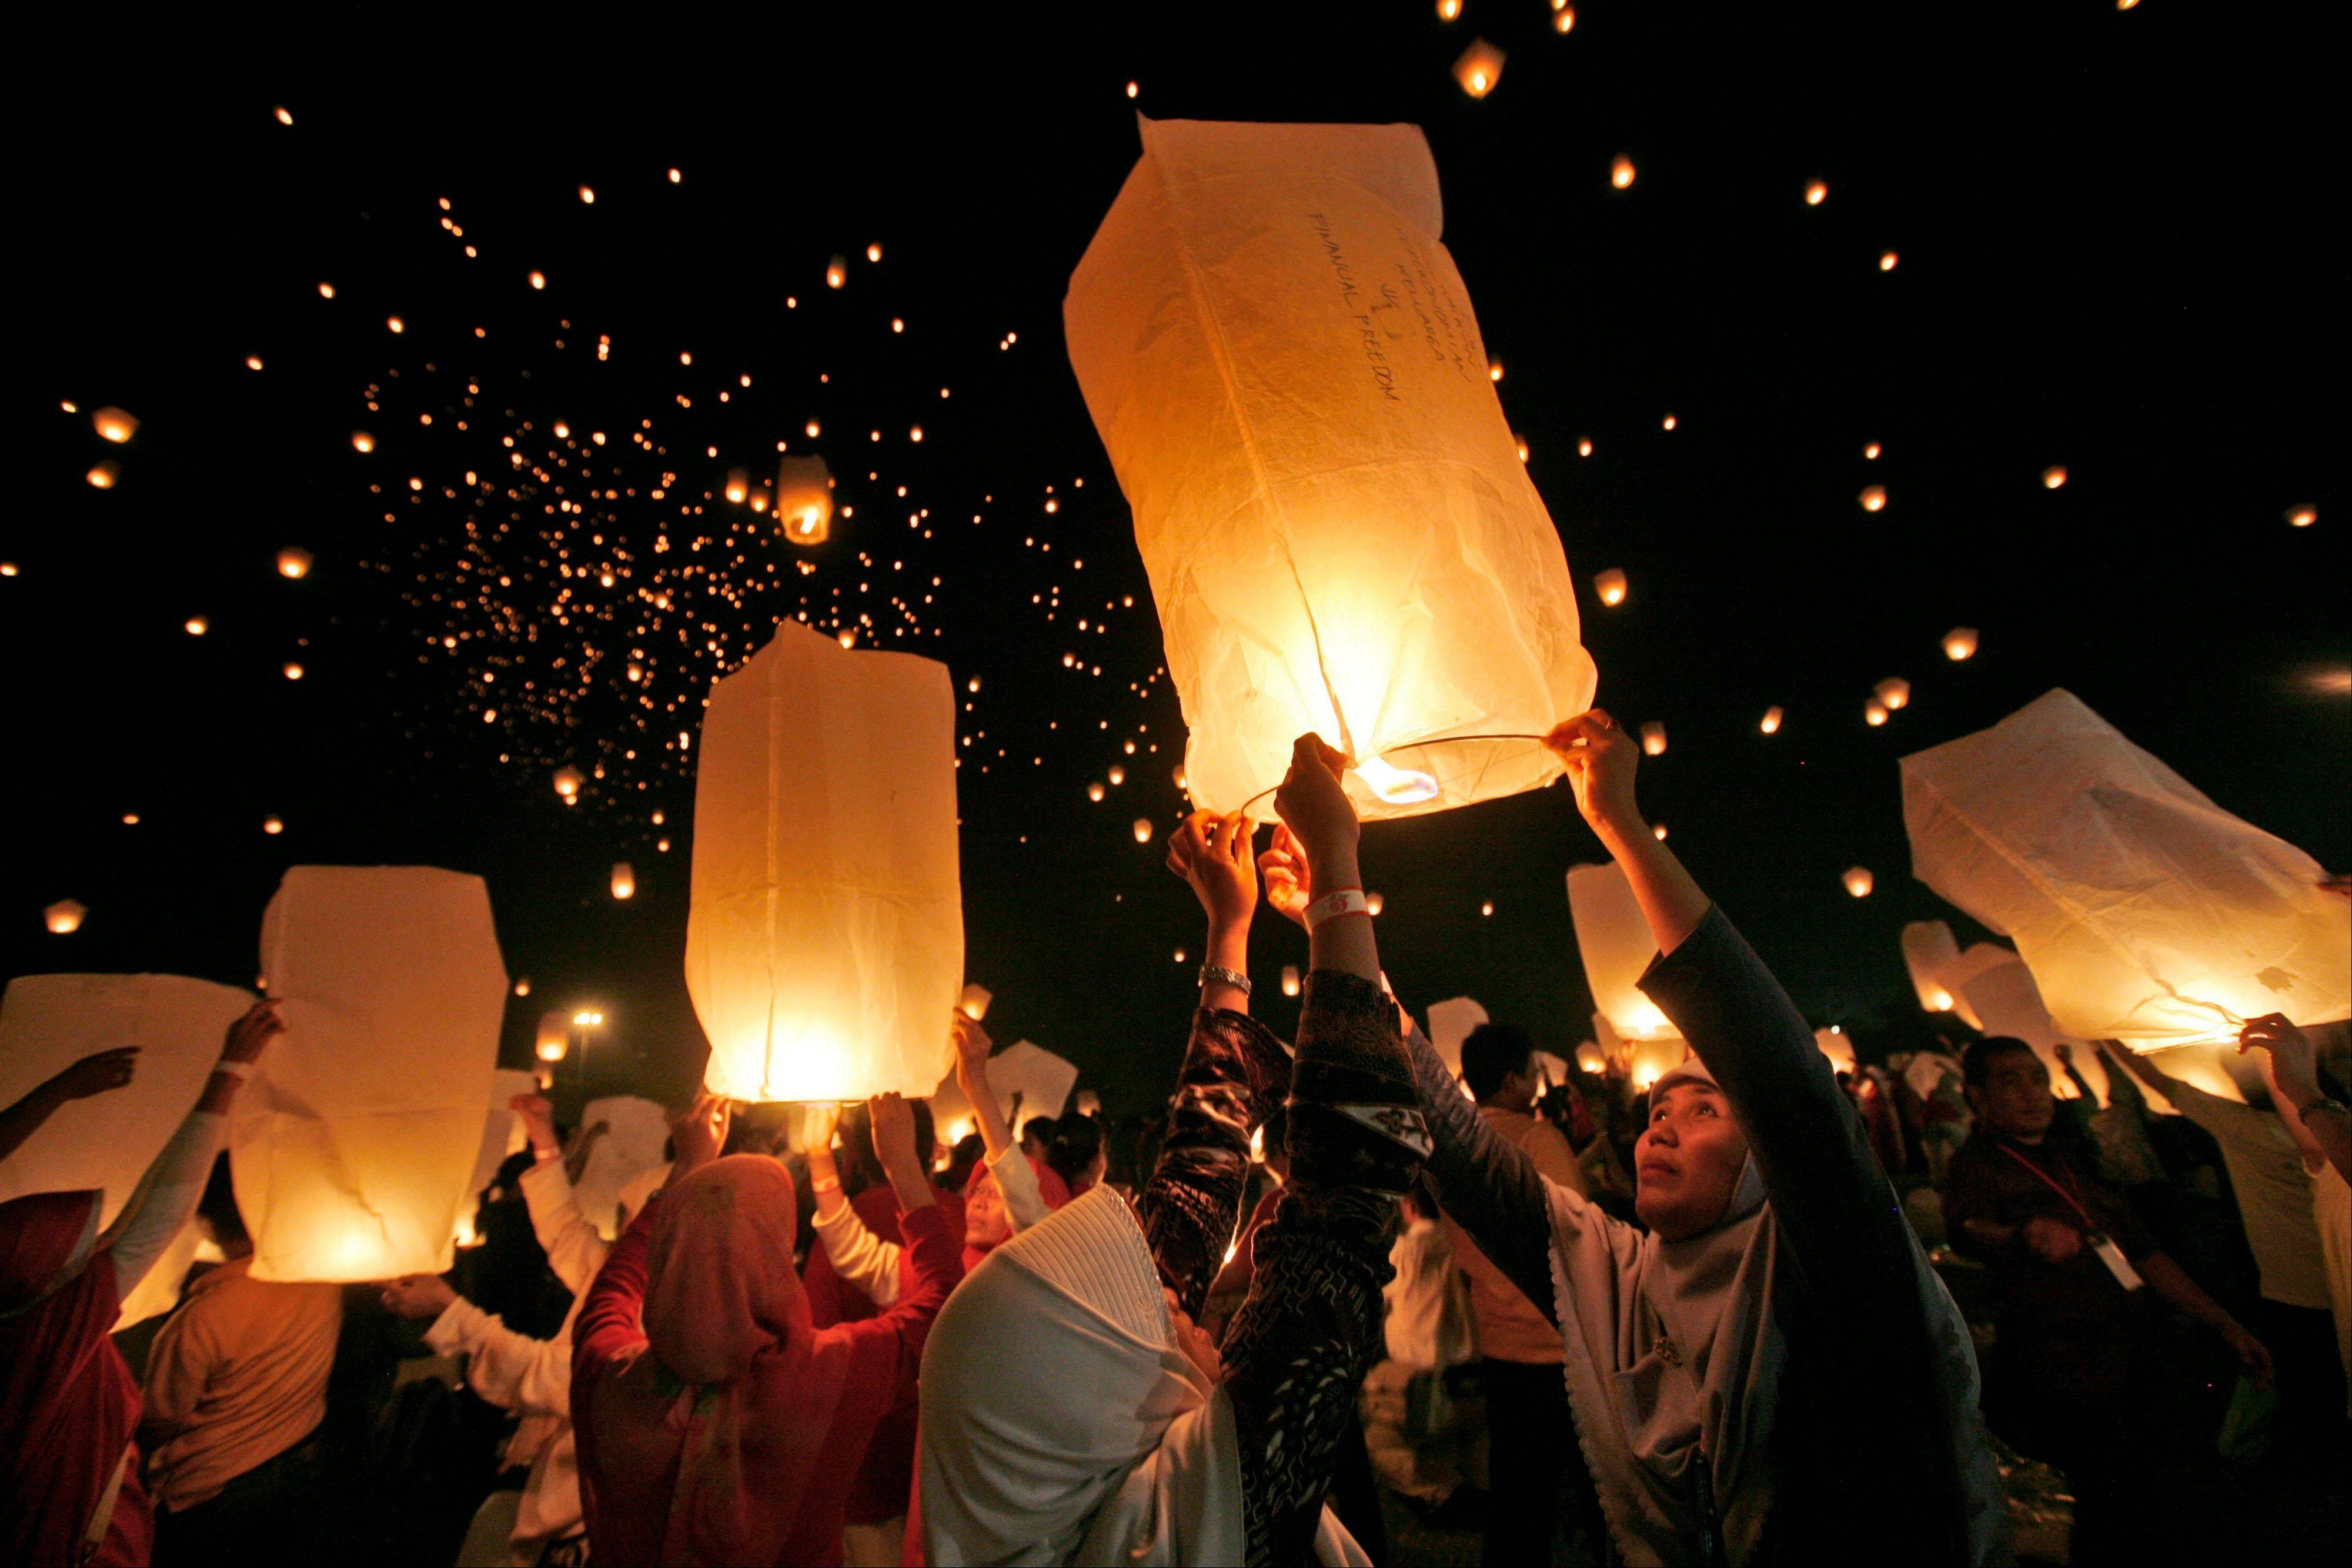 New Hampshire lawmakers have a bill this session to ban the use and sales of sky lanterns in that state because they say the lanterns represent a fire risk.